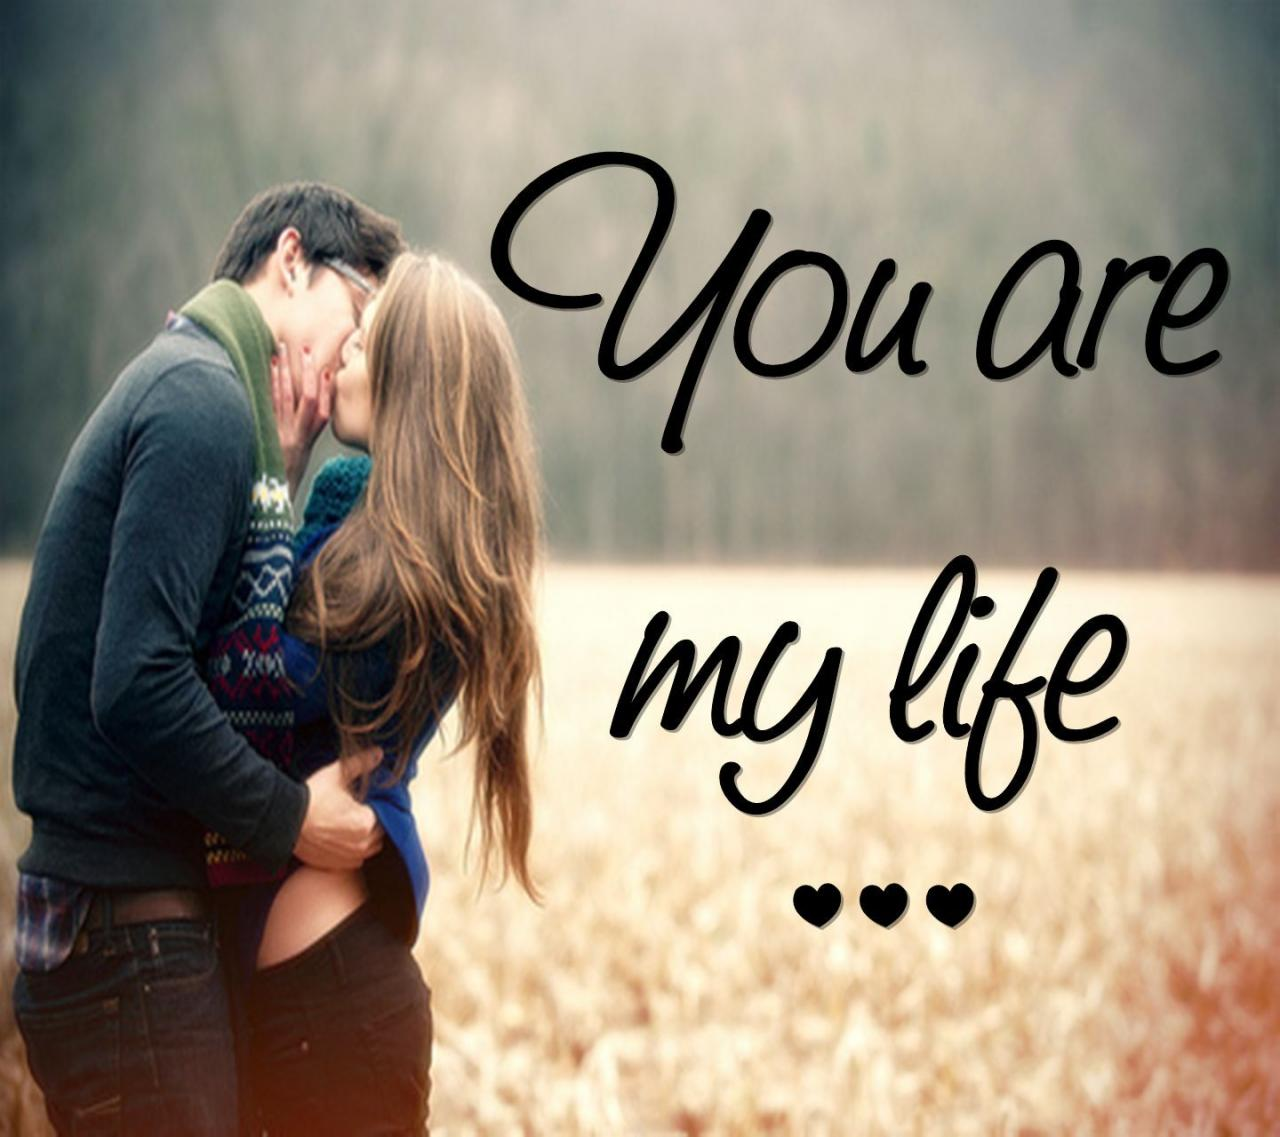 Kissing The One We Love Brings Out Joyful Emotions That Make Us Feel Complete And Happy If Youre Looking For Some Inspiration Kiss Quotes These Romantic